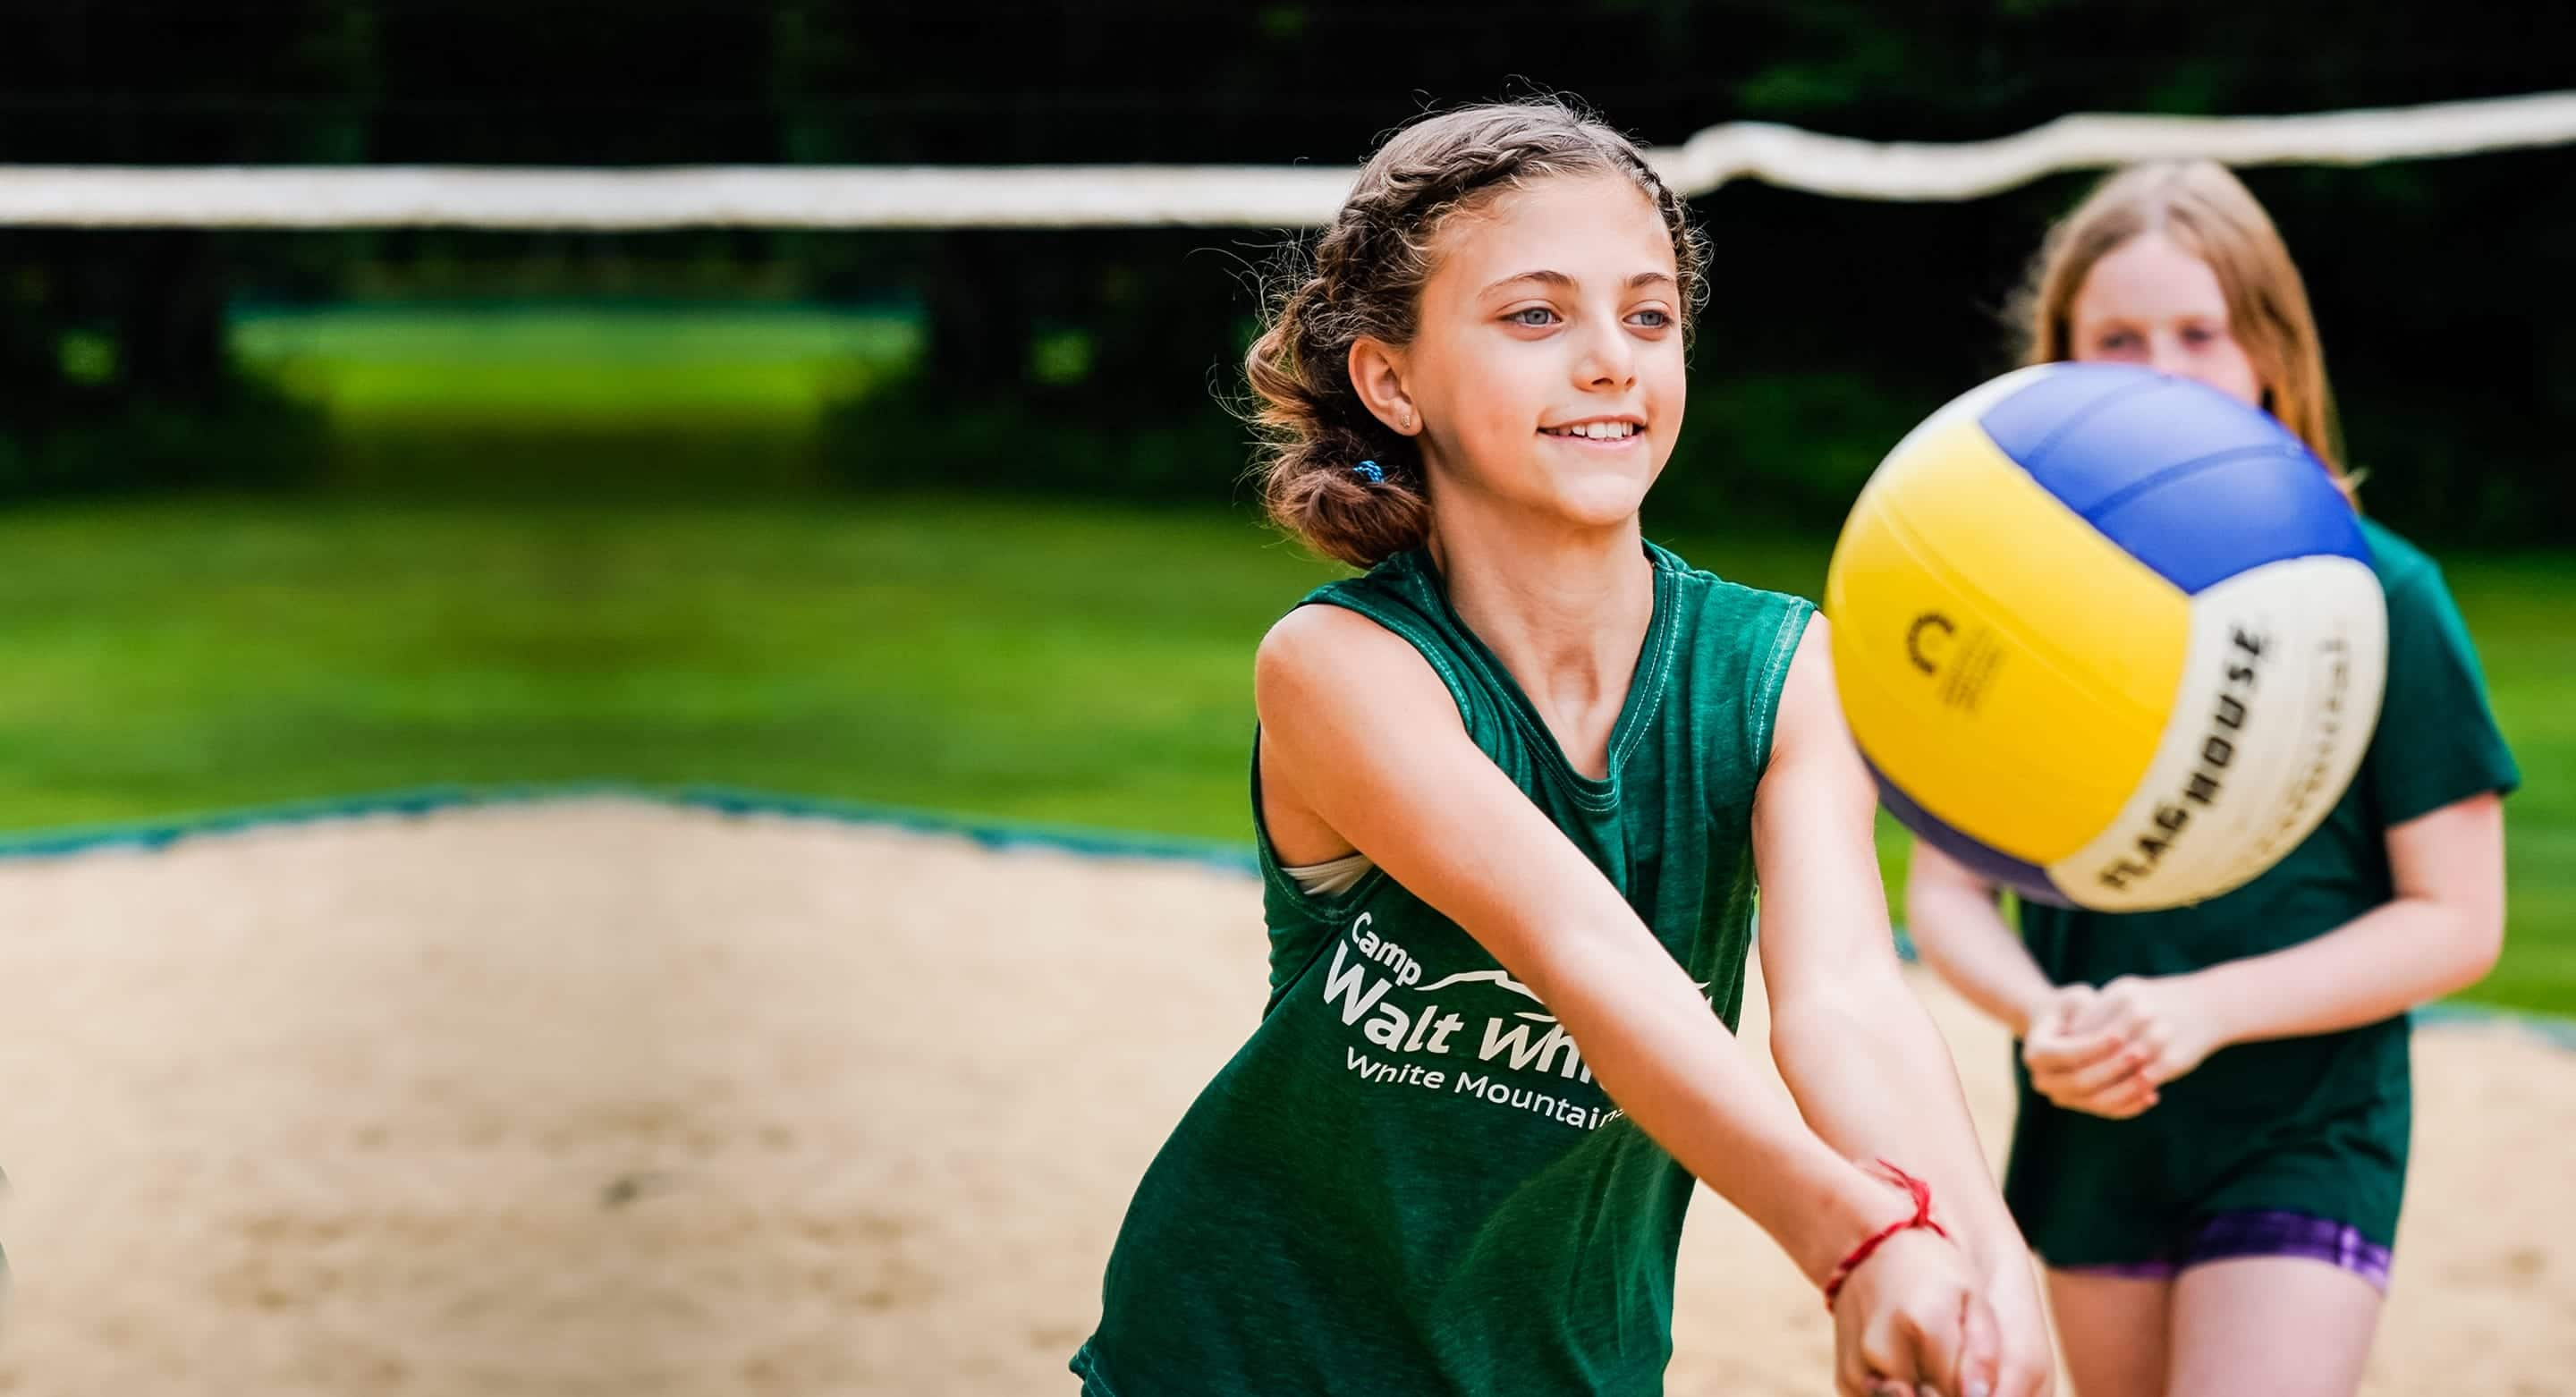 young girl smiling while passing an outdoor volleyball